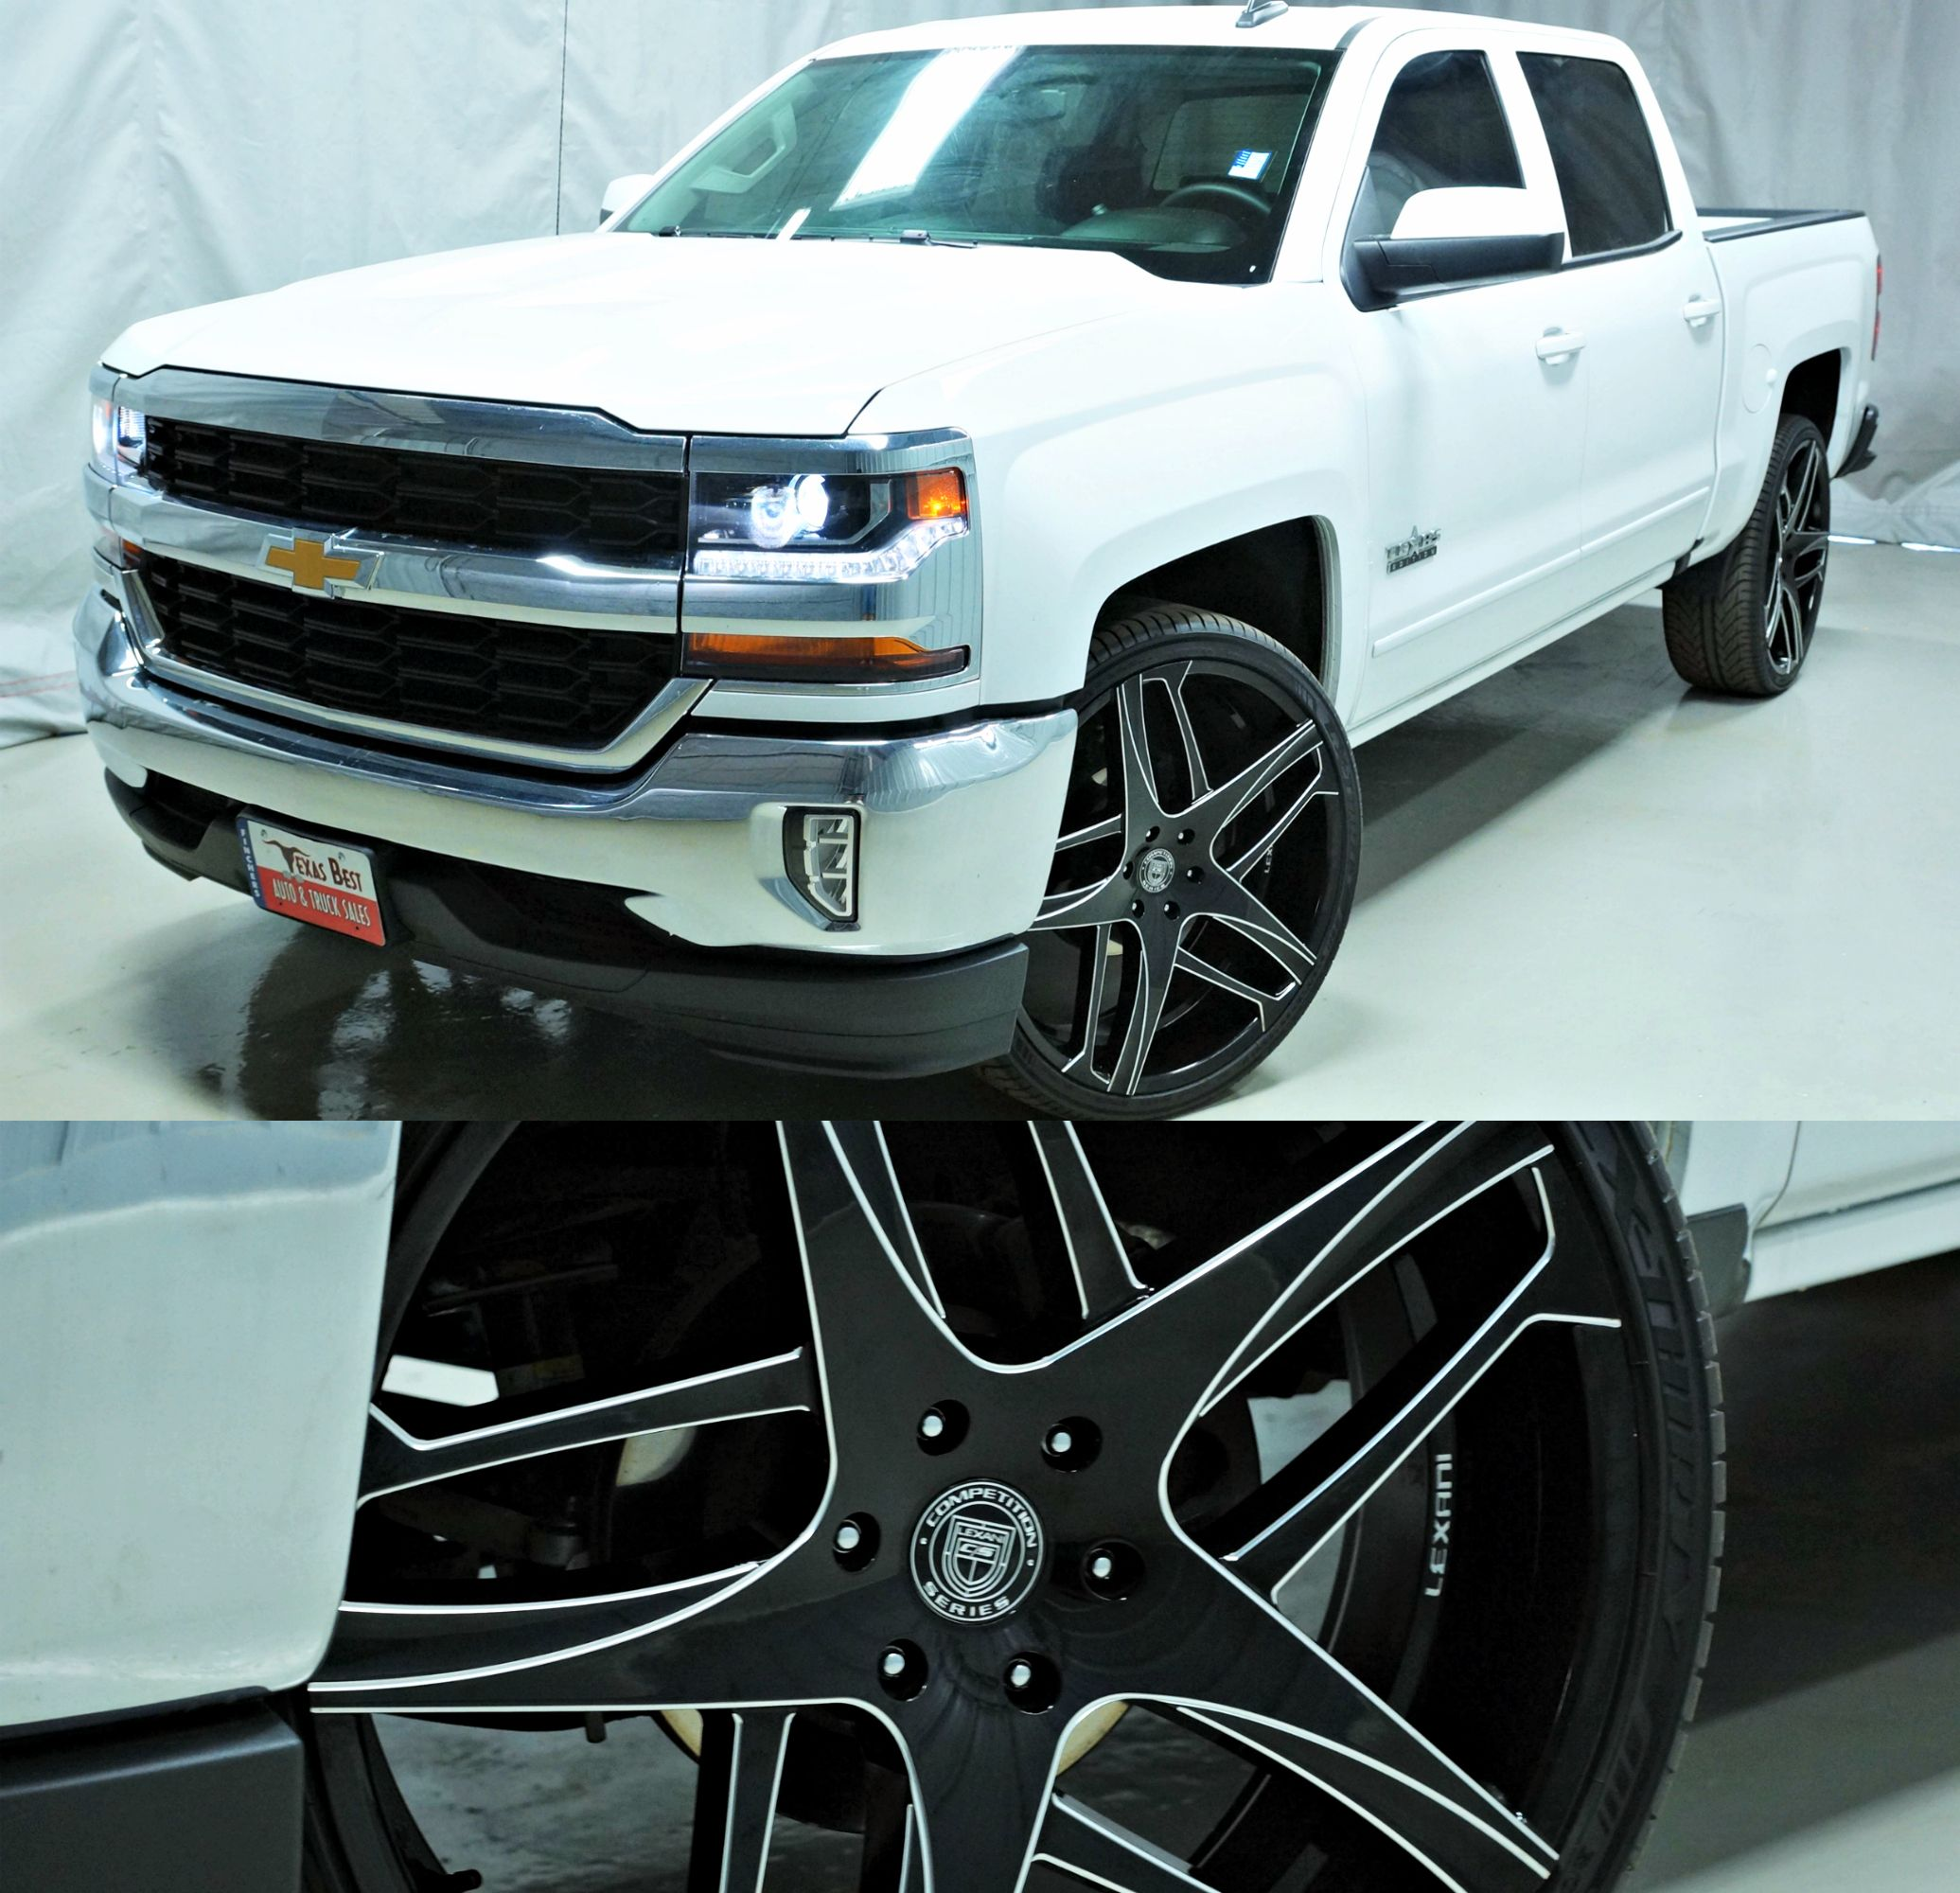 2016 Chevrolet Silverado 1500 On Custom 26 Lexani Wheels